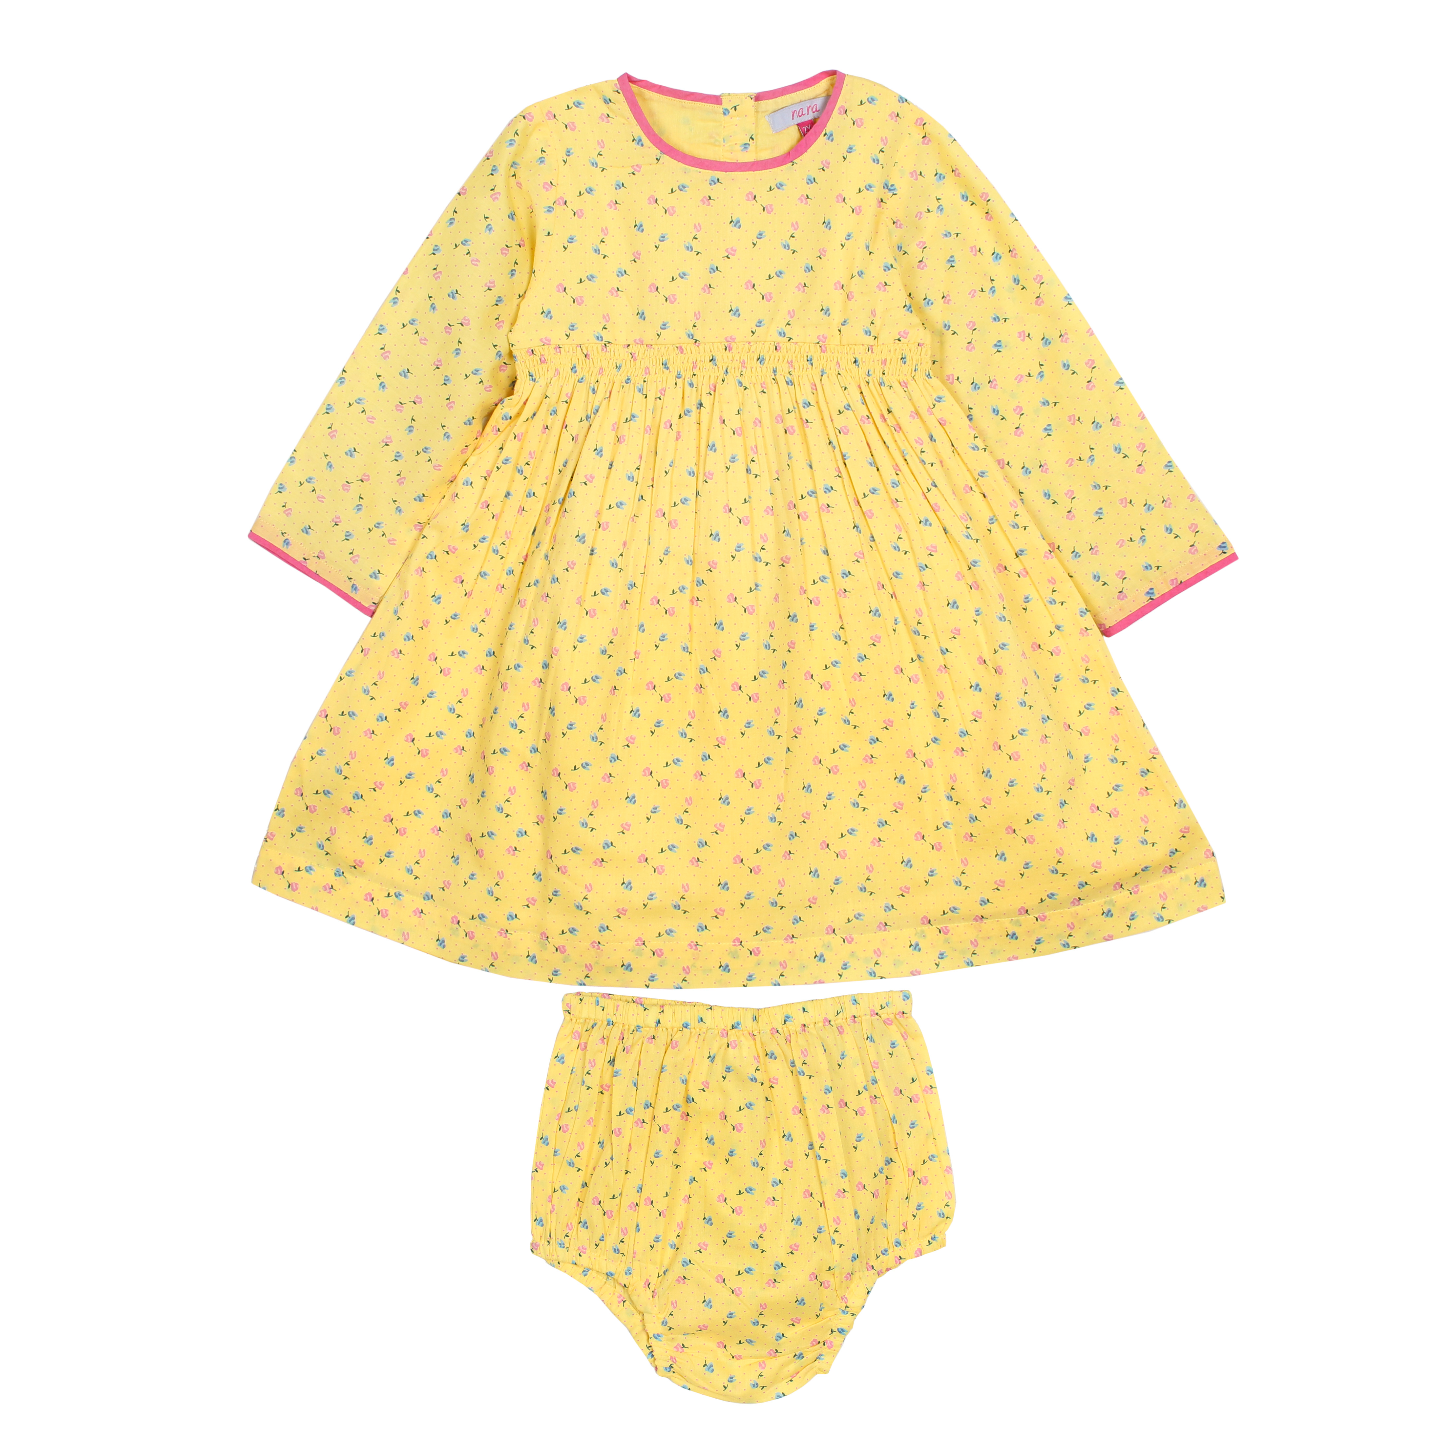 Yellow liberty clothing set